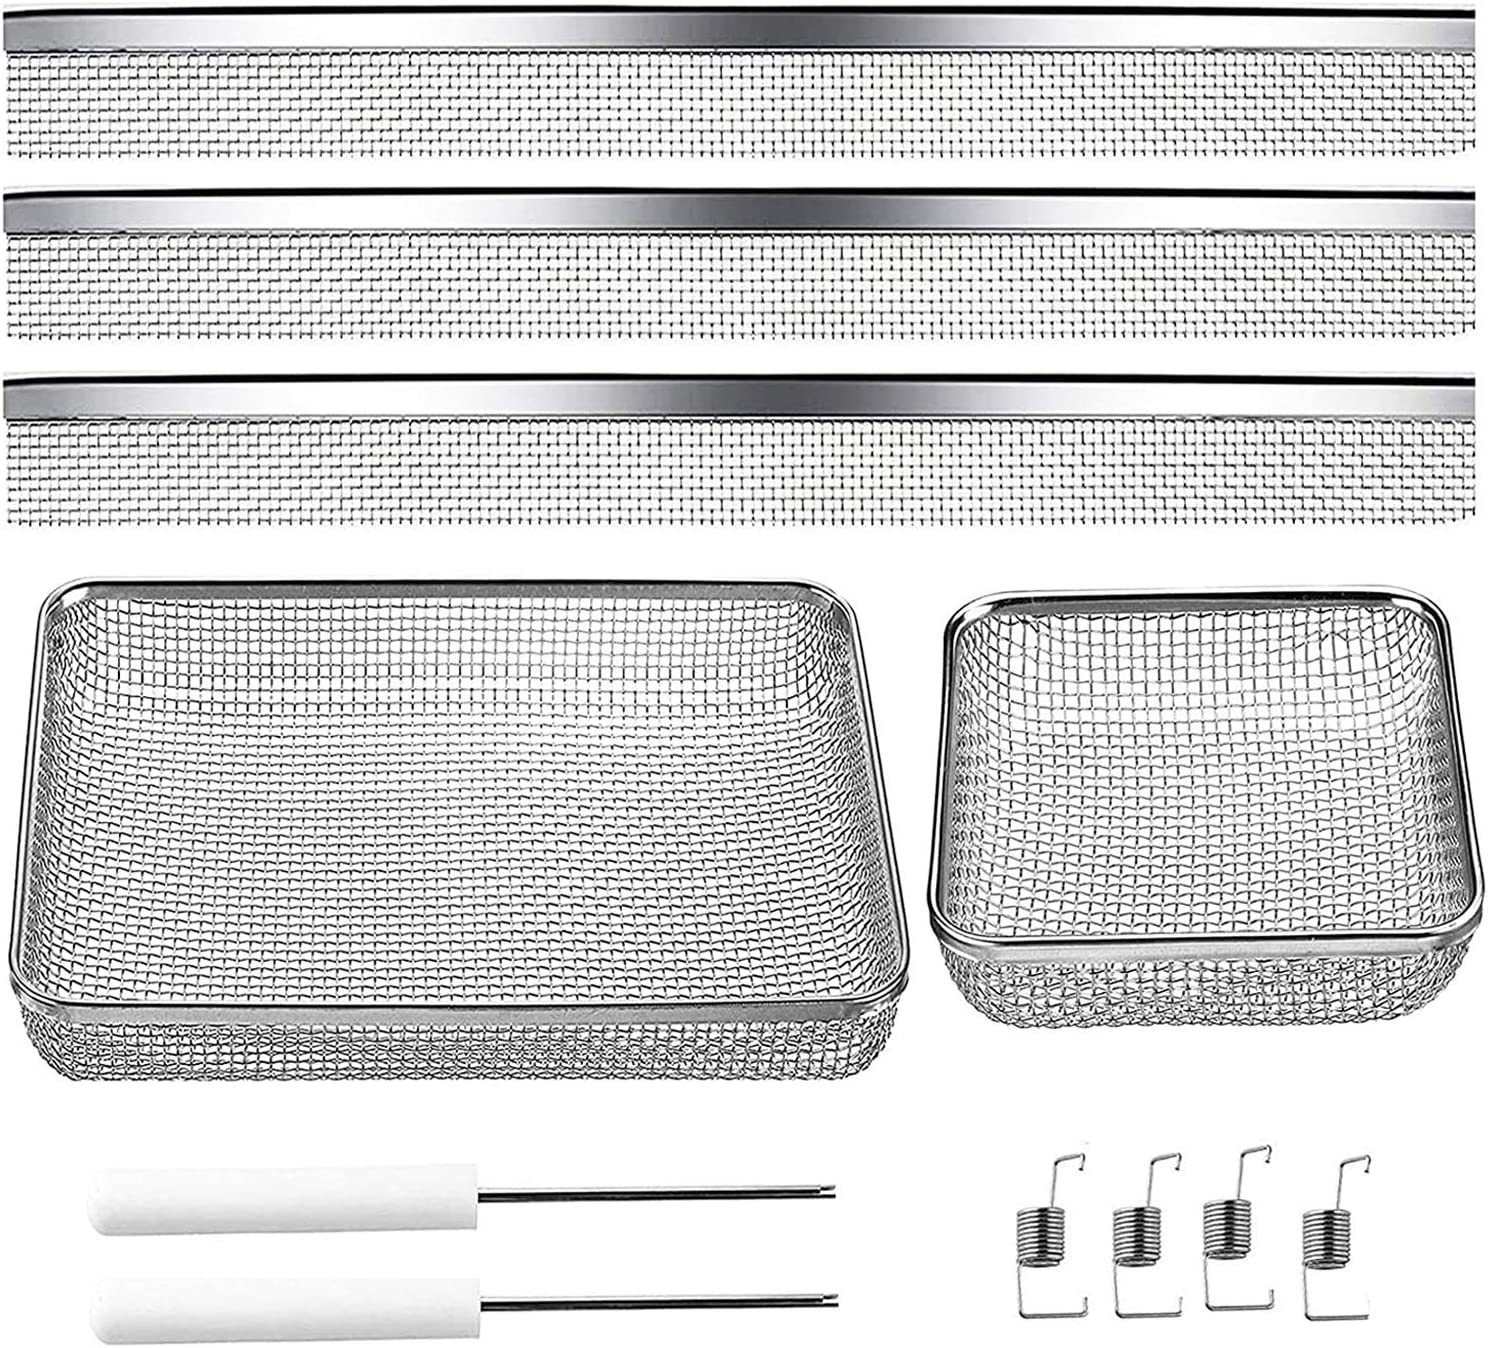 """wadoy RV Furnace Bug Screen for Camper Vents,Flying Insect Screen for RV Refrigerator Vents, RV Water Heater Screen 19-3/4"""" x 1-5/16"""" & 4.5"""" x 4.5"""" x 1.3'' & 8.5"""" x 6"""" x 1.3"""""""